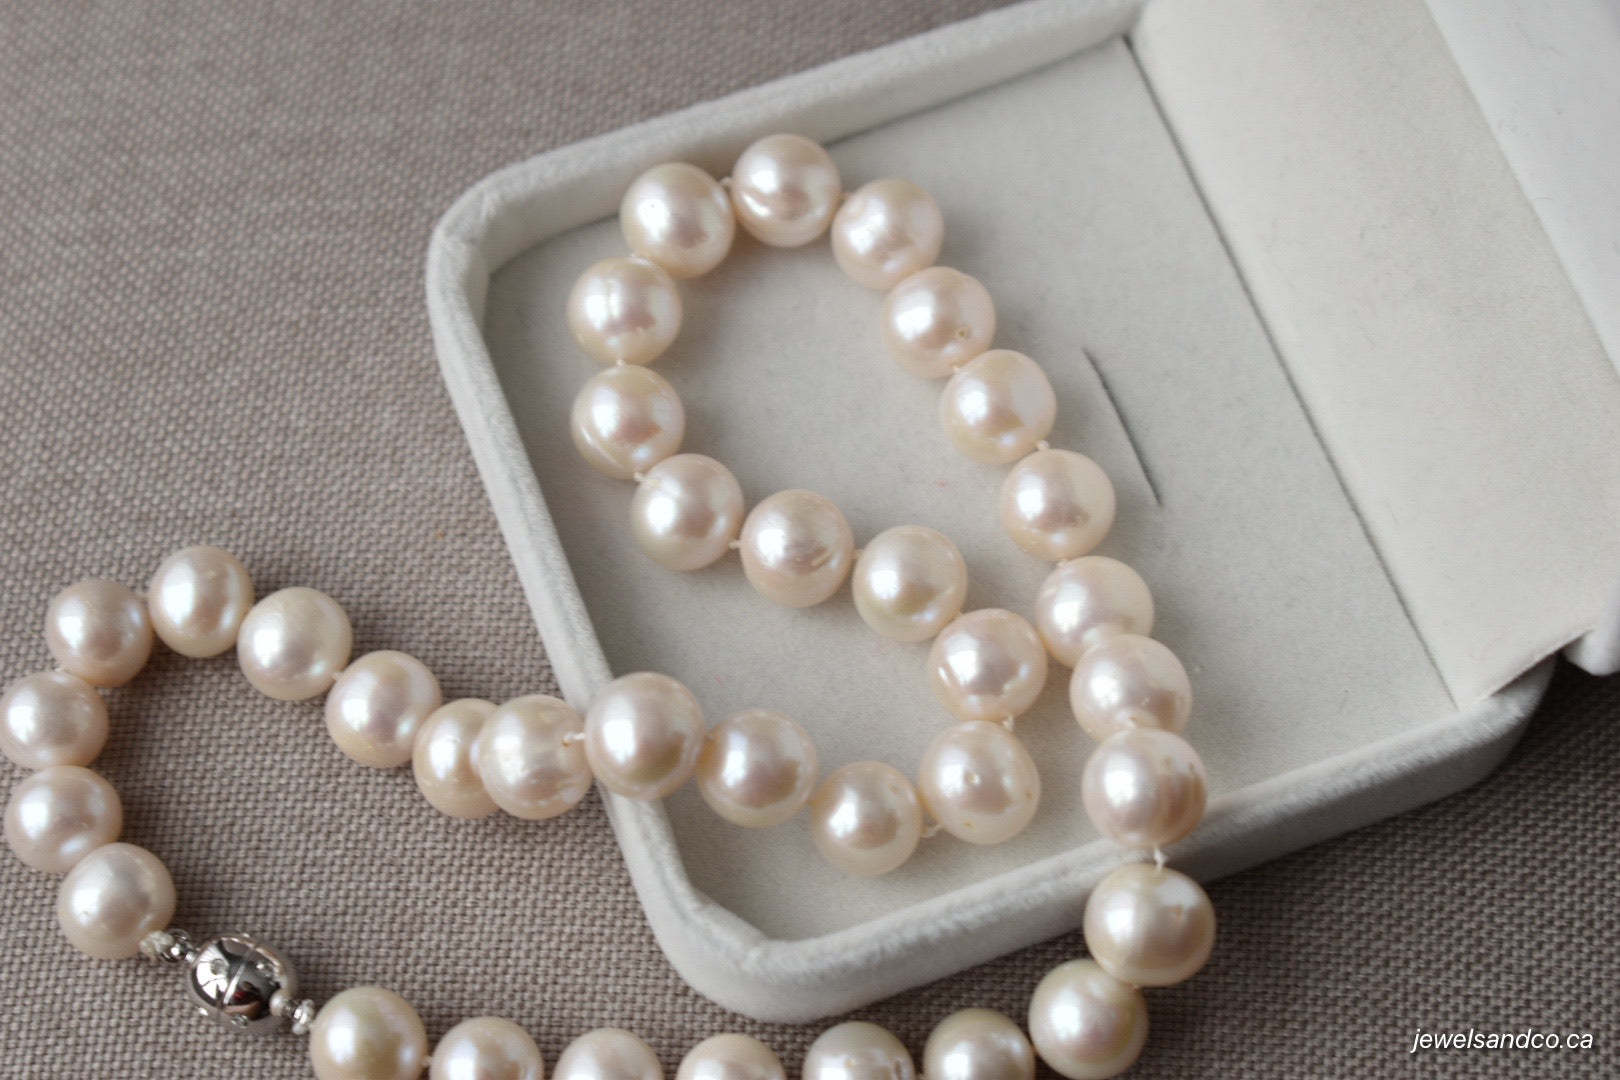 White Freshwater Pearl Necklace, 11.5-12mm